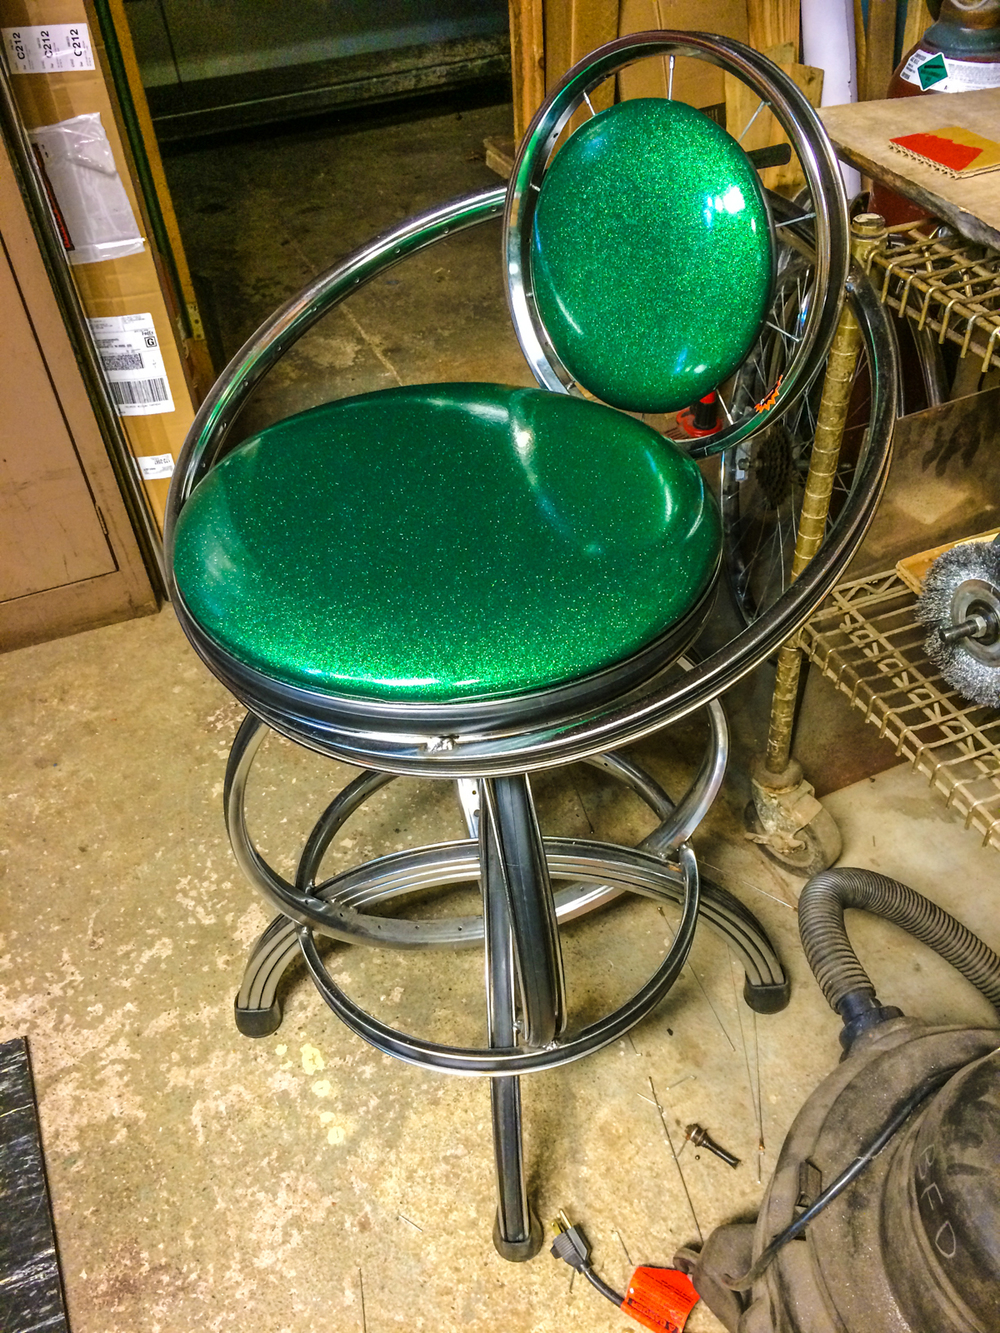 S-2 Swivel Barstool with back,j green glitter cushions - qty 2 - COMPLETED